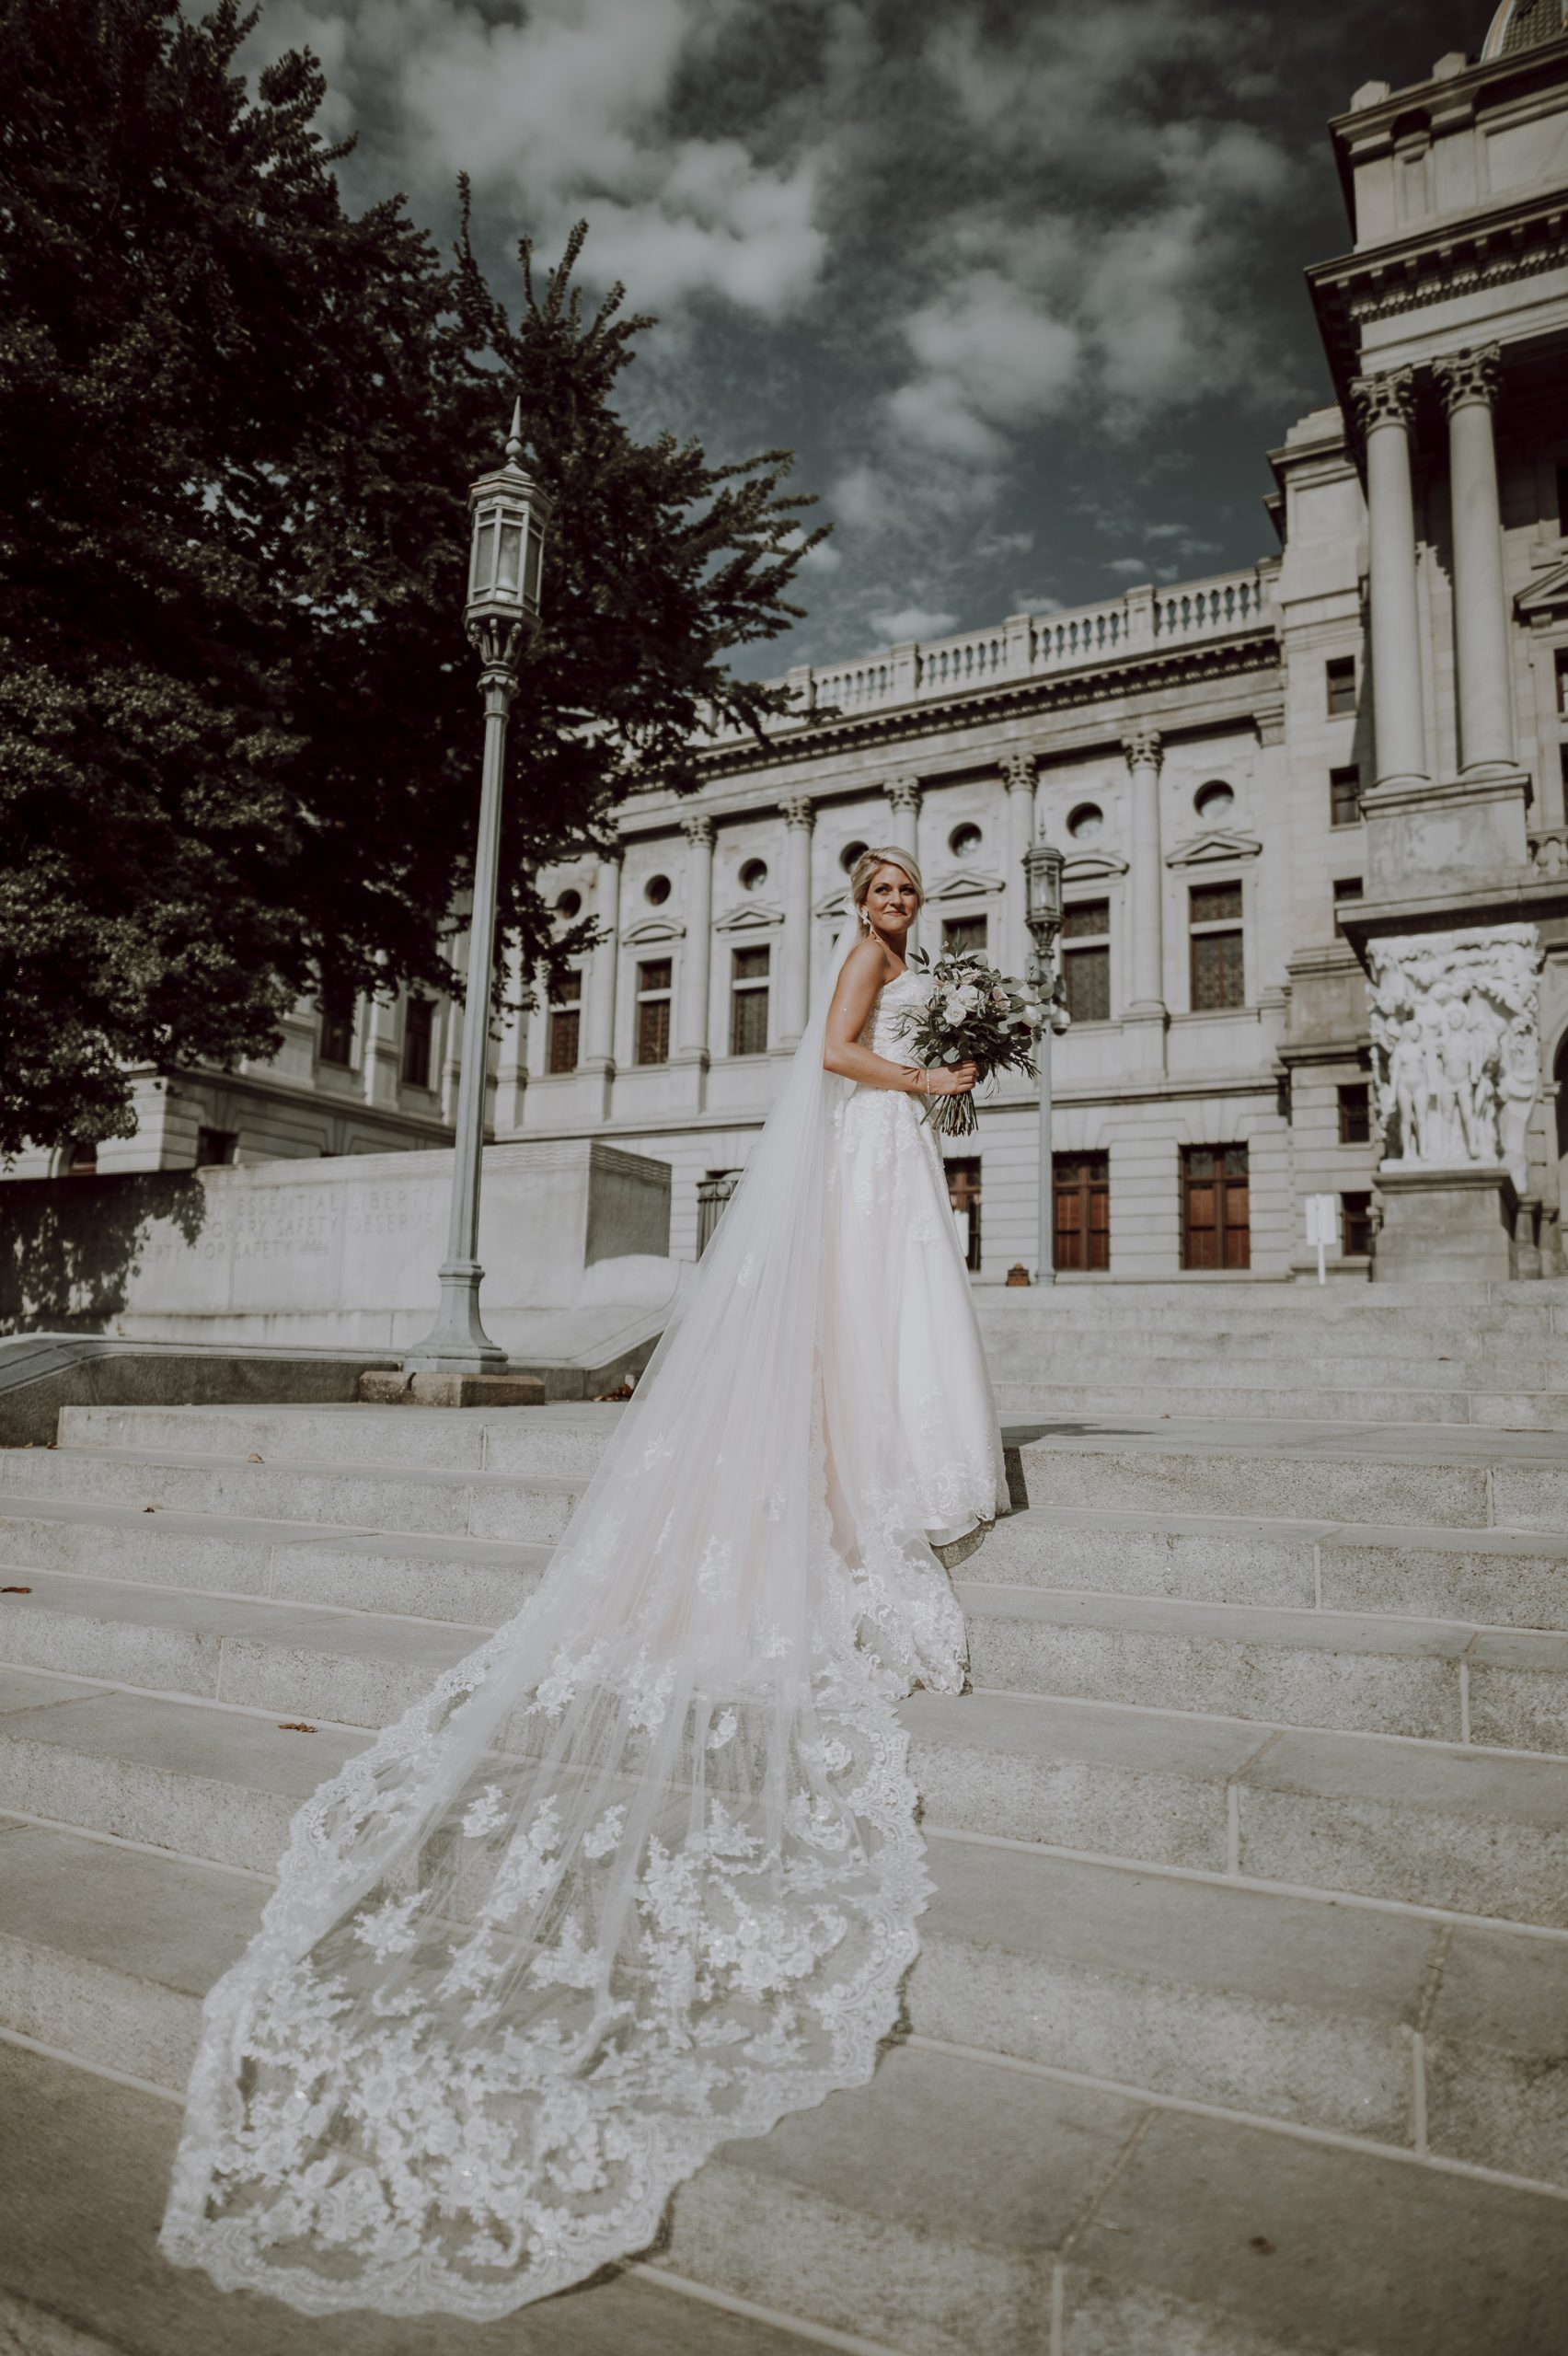 A wonderfully romantic veil cascades down the steps of the capital. Captured by Lovefusion Photography at Stock's Manor in Mechanicsburg, PA. Featured on Dream Weddings.